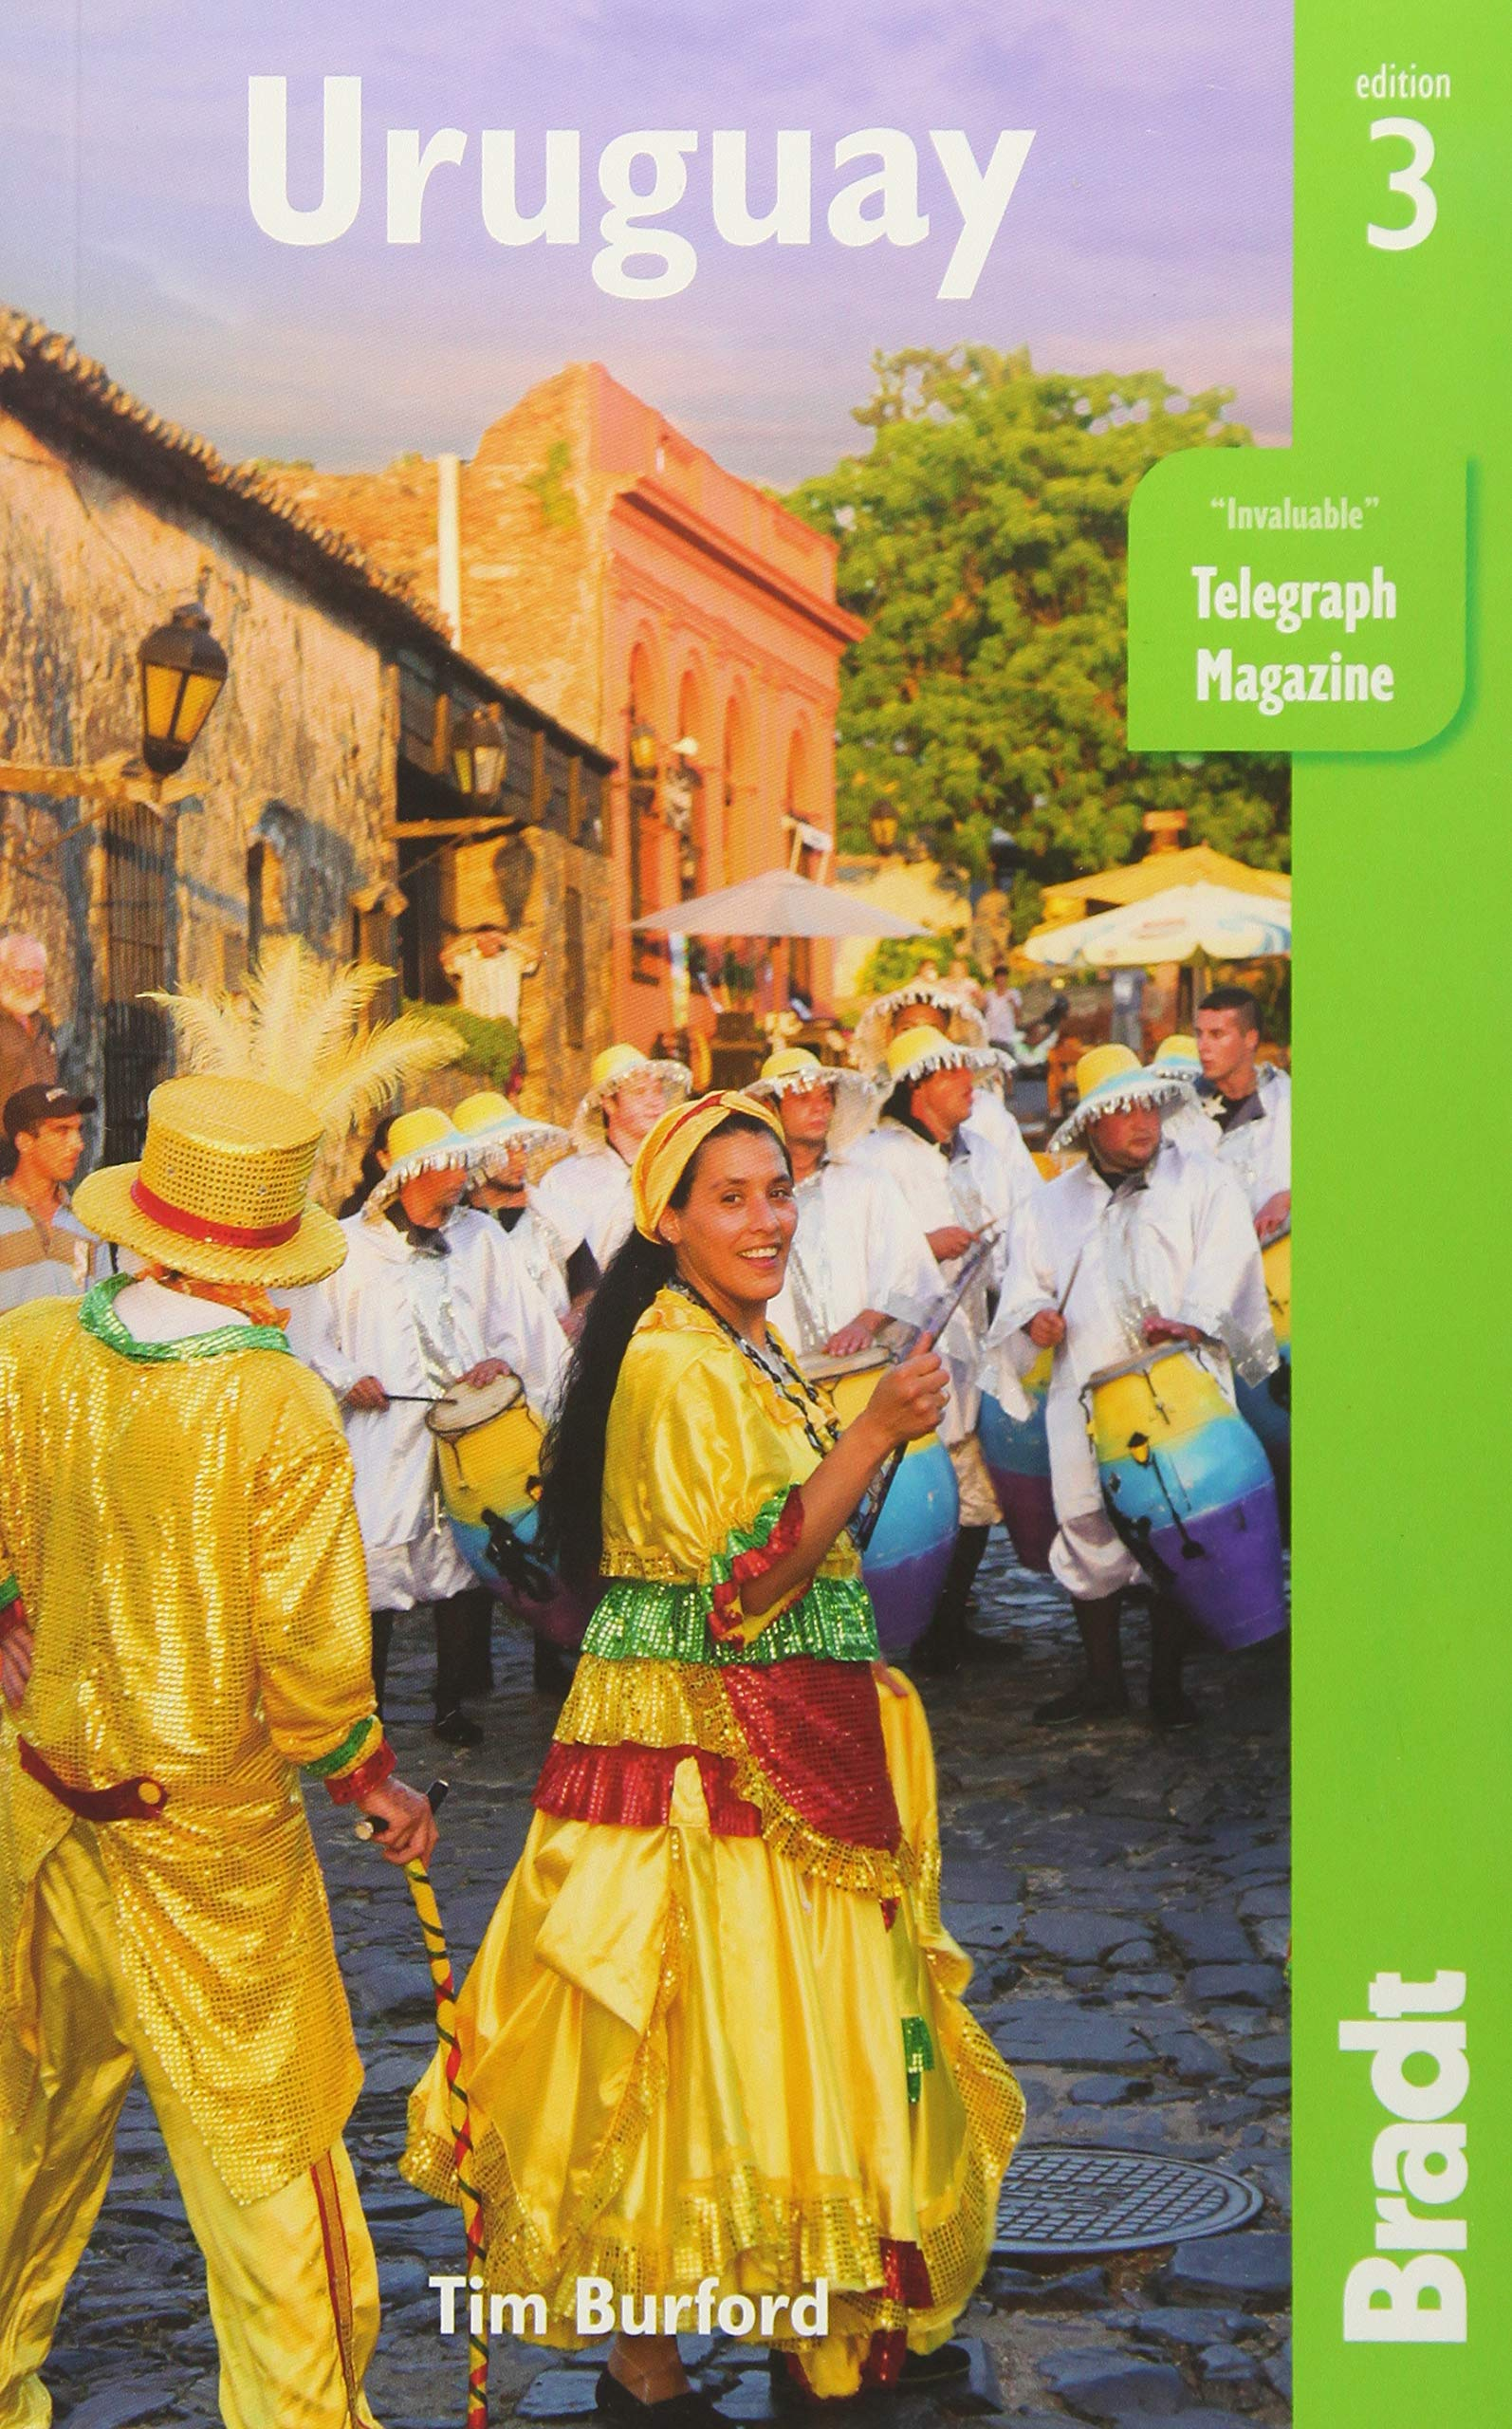 Uruguay (Bradt Travel Guides): Amazon.es: Tim Burford: Libros en idiomas extranjeros